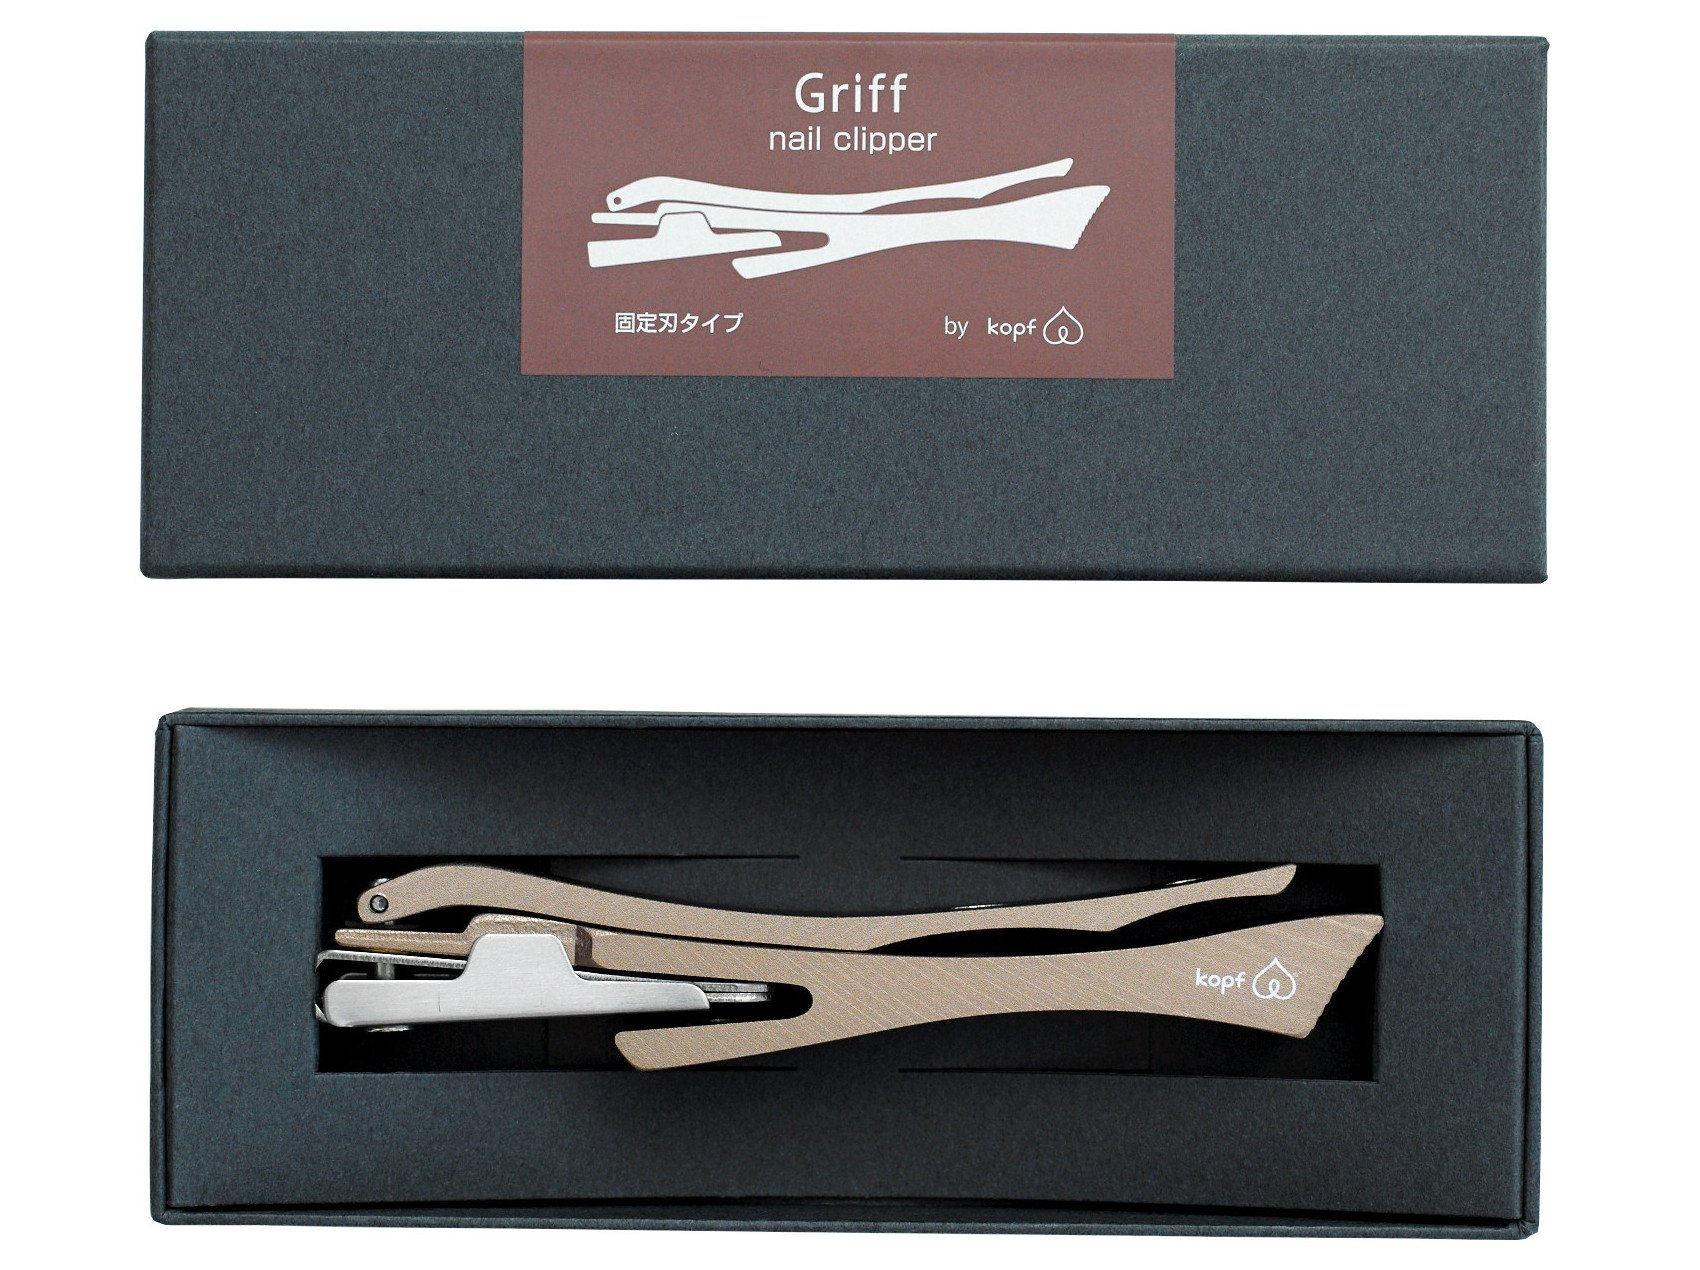 Seki Japan Nail Cripper Griff High Carbon Stainless Steel, Maroon Body